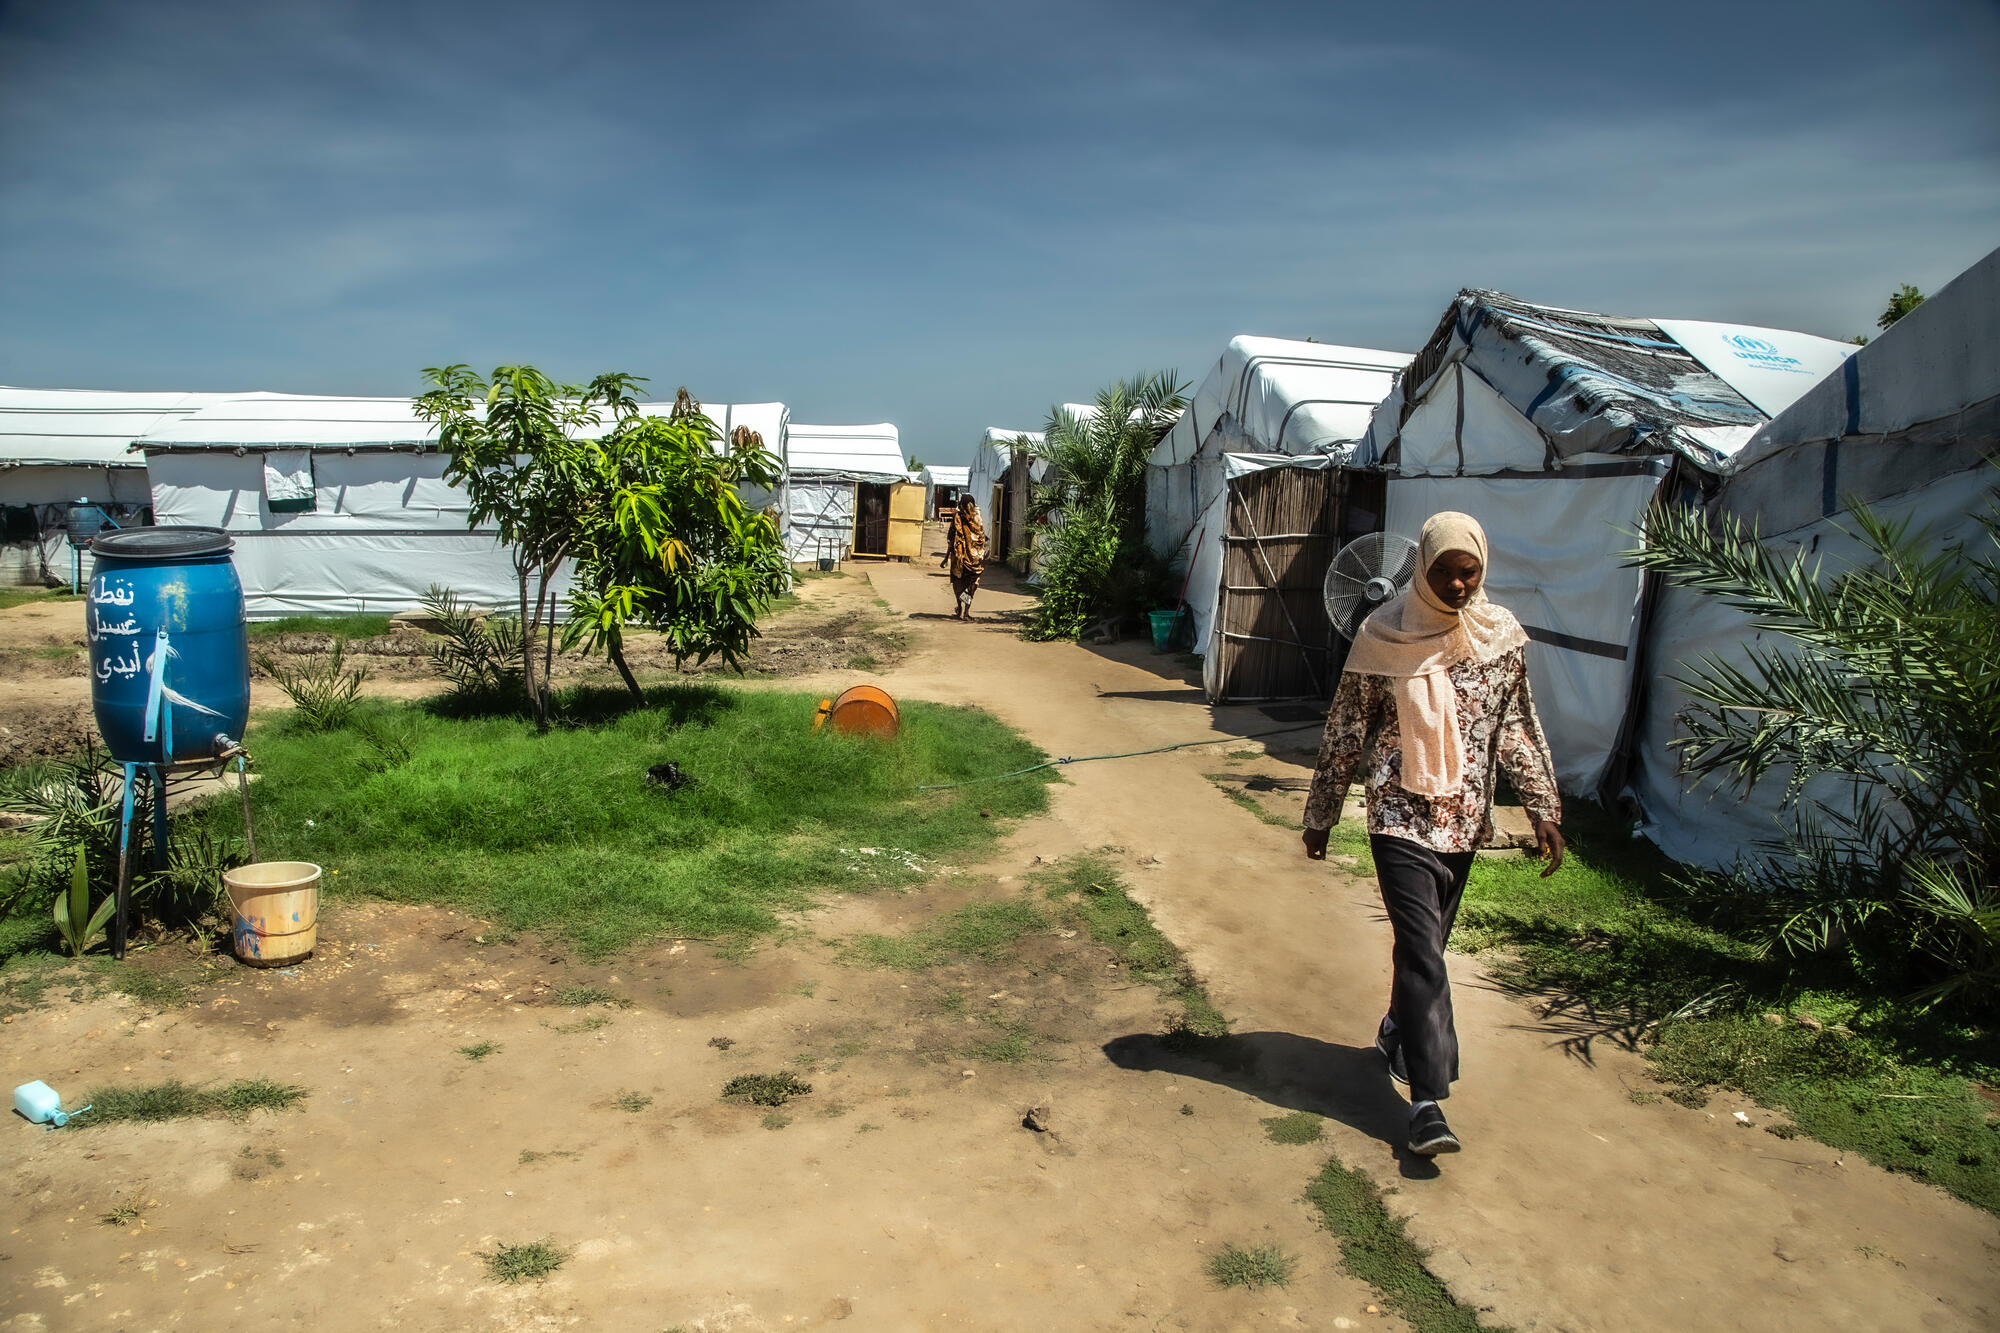 Al Kashafa refugee camp, in Sudan's White Nile state